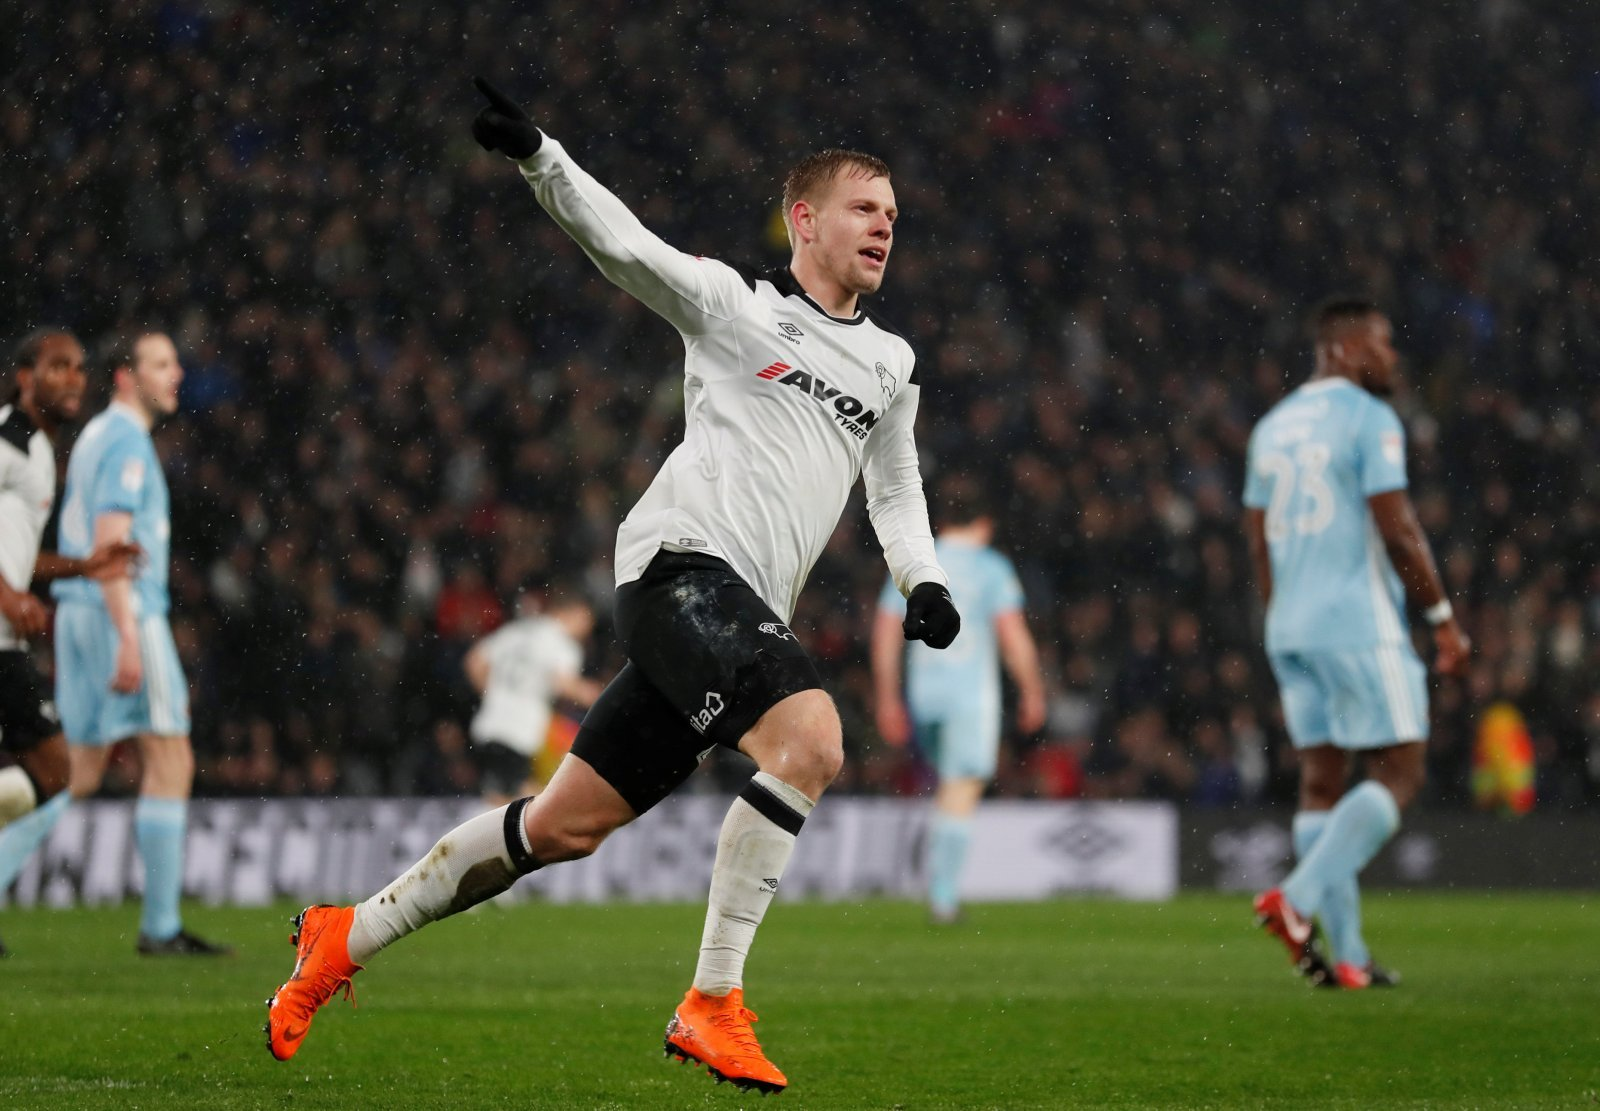 Burnley should add some firepower to their squad and sign this £7.2m-rated Championship strike ace